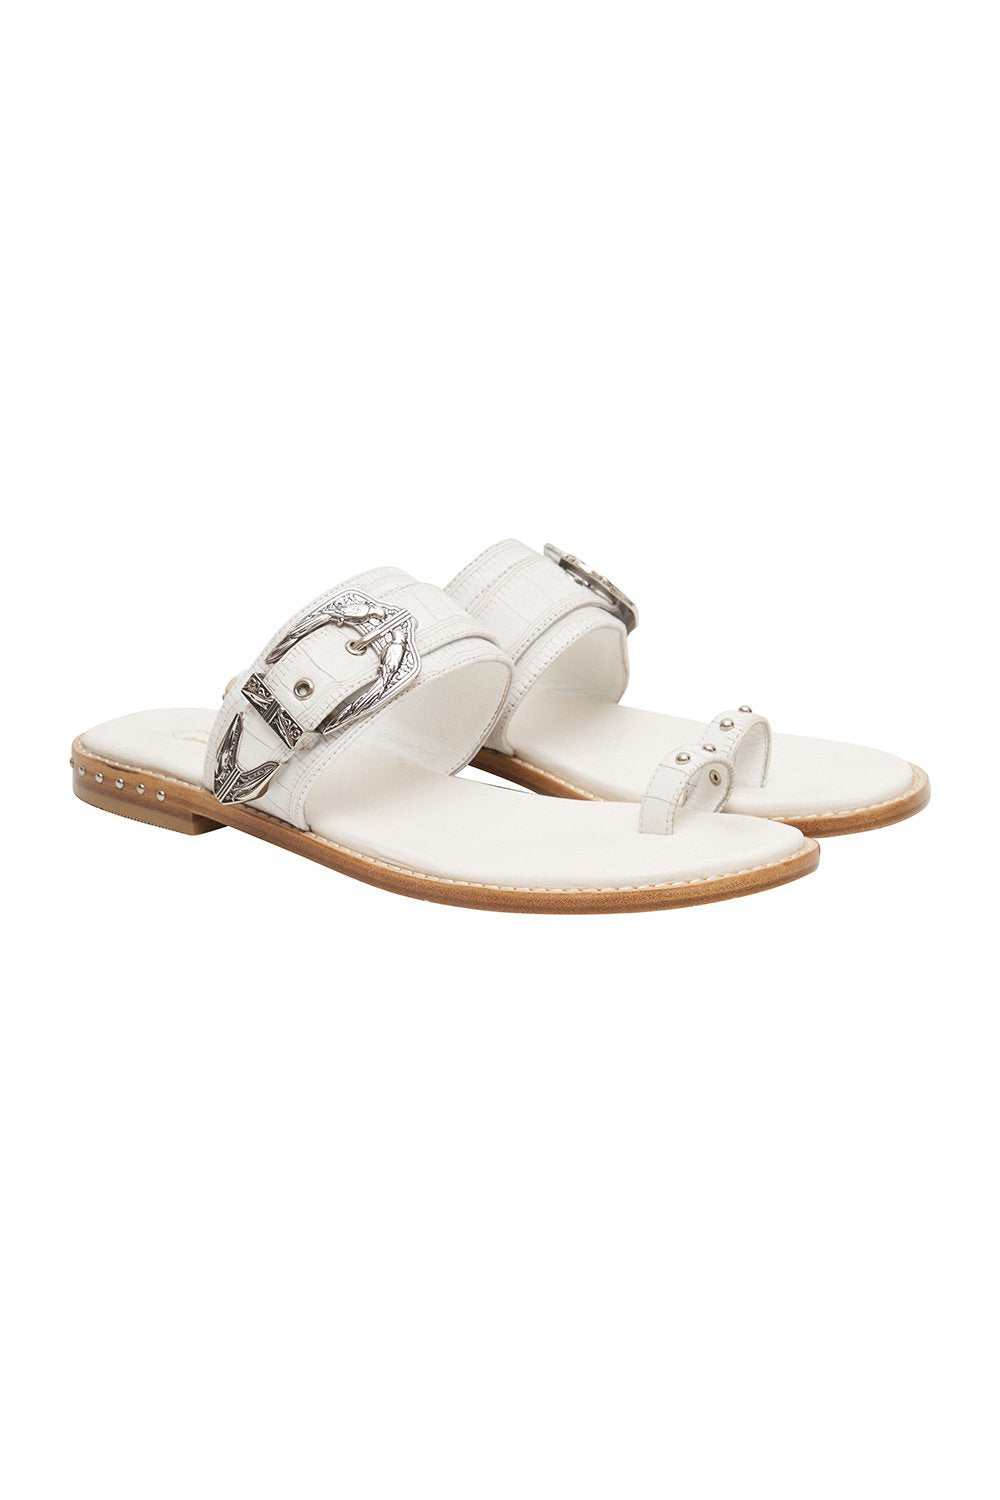 BIRD BUCKLE TOE LOOP SLIDE SOLID WHITE